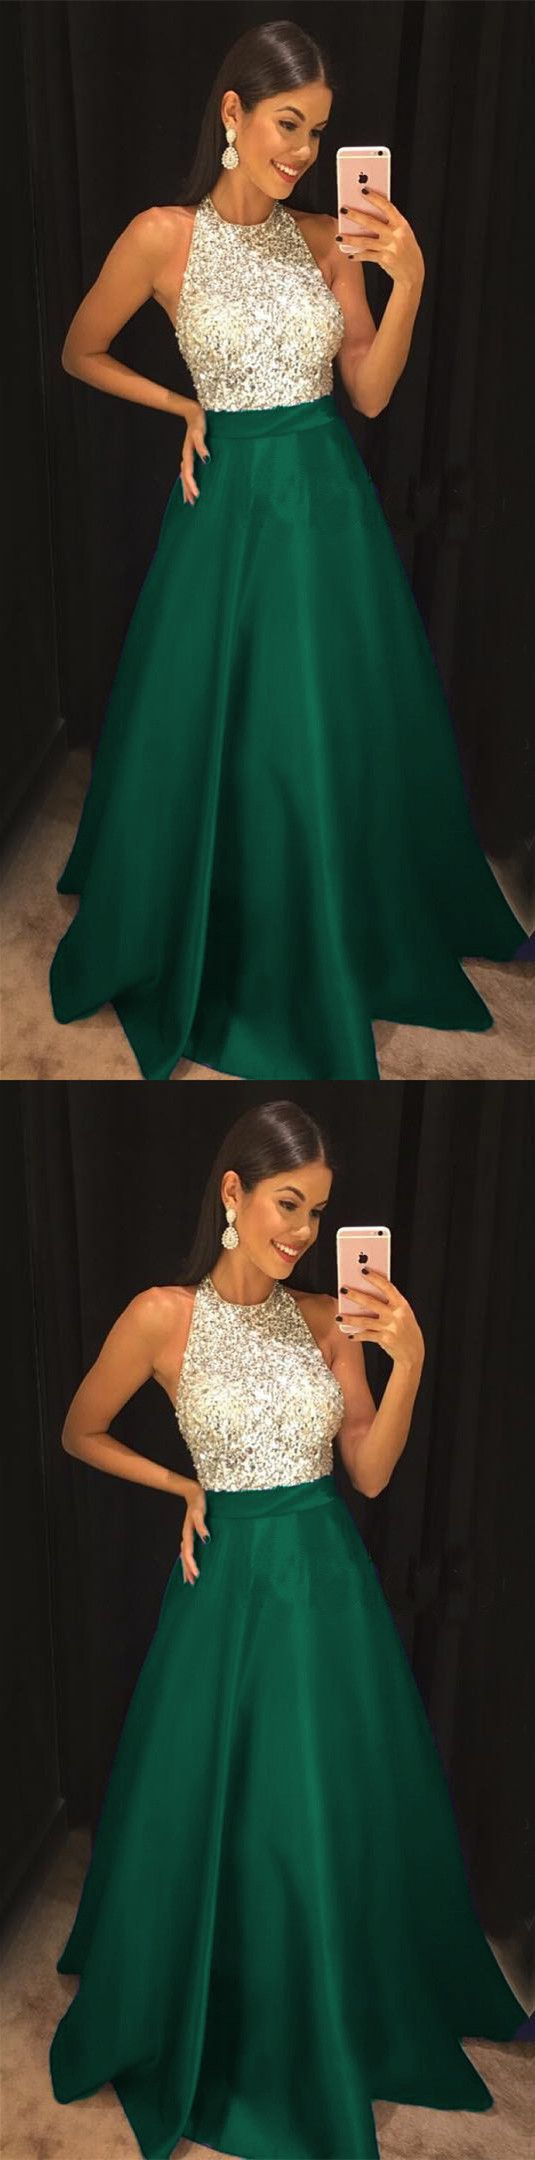 Emerald green prom dress 2018  Sparkly Sequins Beaded Halter Long Satin Prom Dresses   Prom